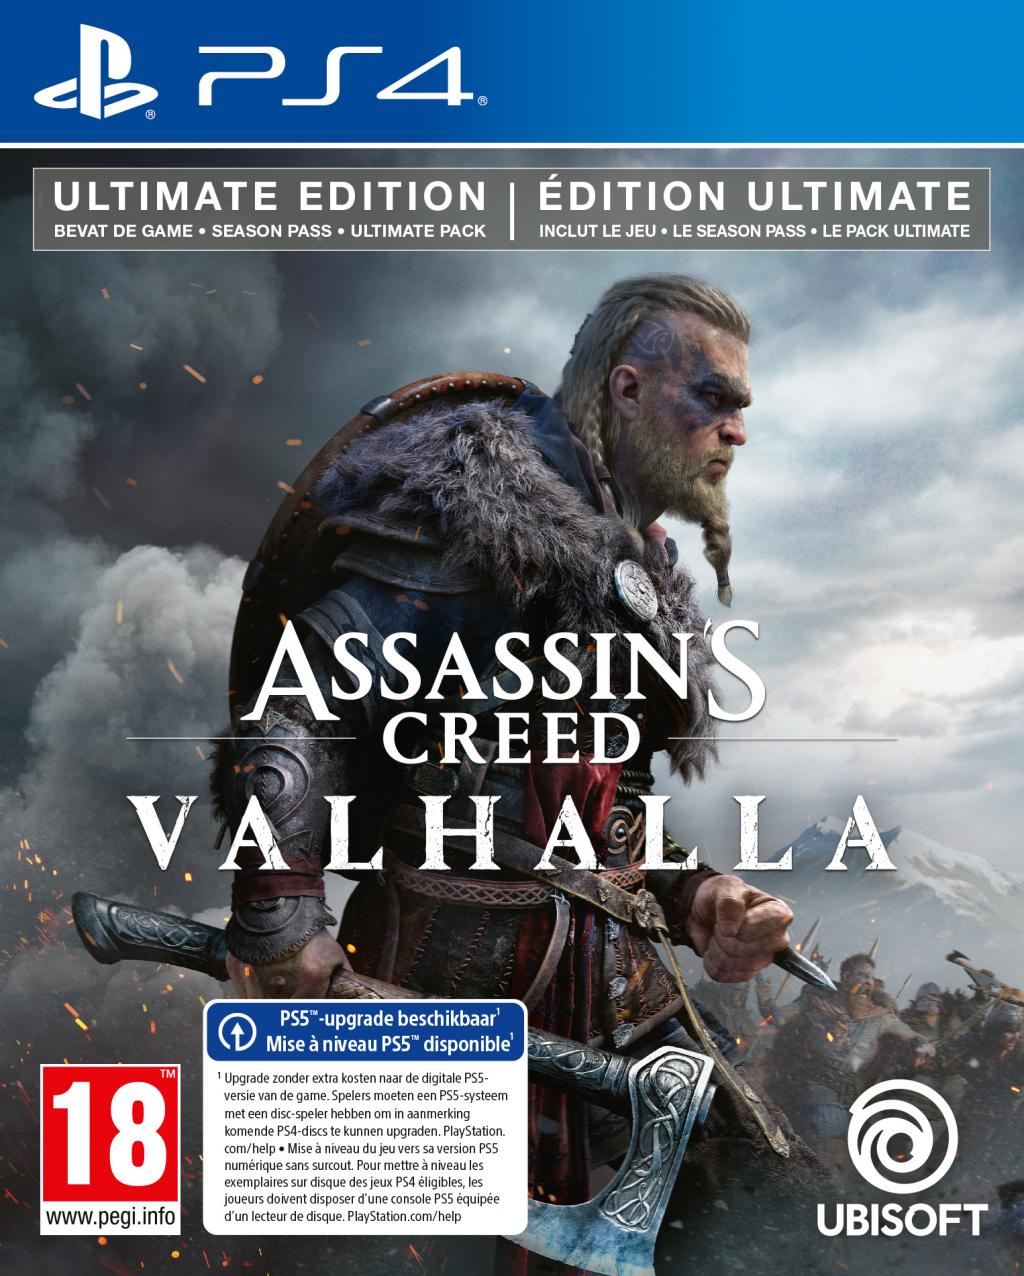 Assassin's Creed Valhalla Ultimate + Edition - UPGRADE PS5 free_1